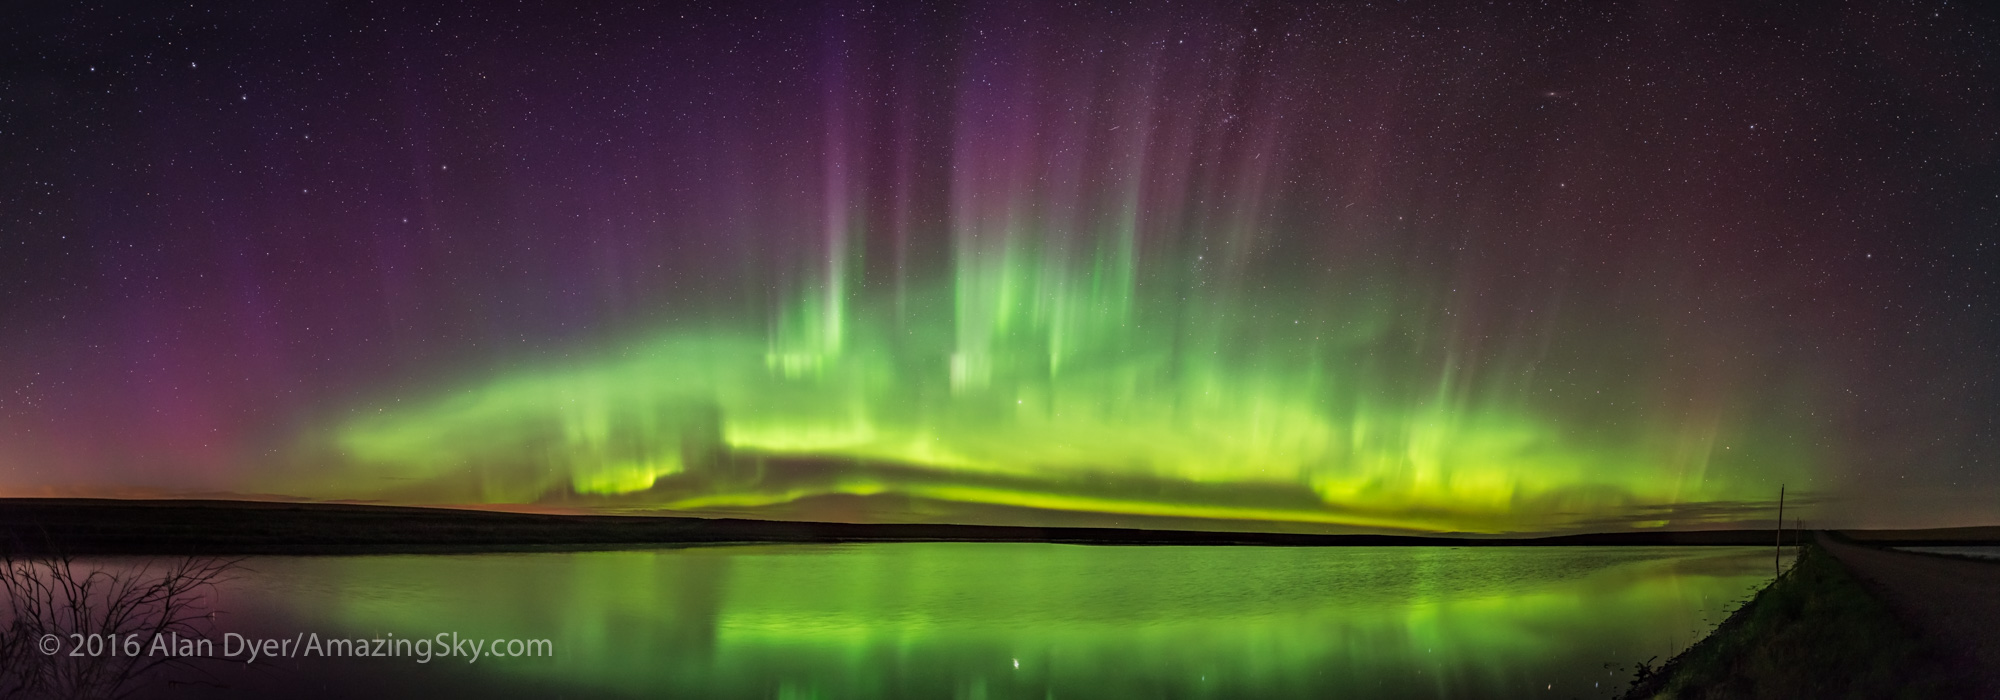 Arc of the Northern Lights